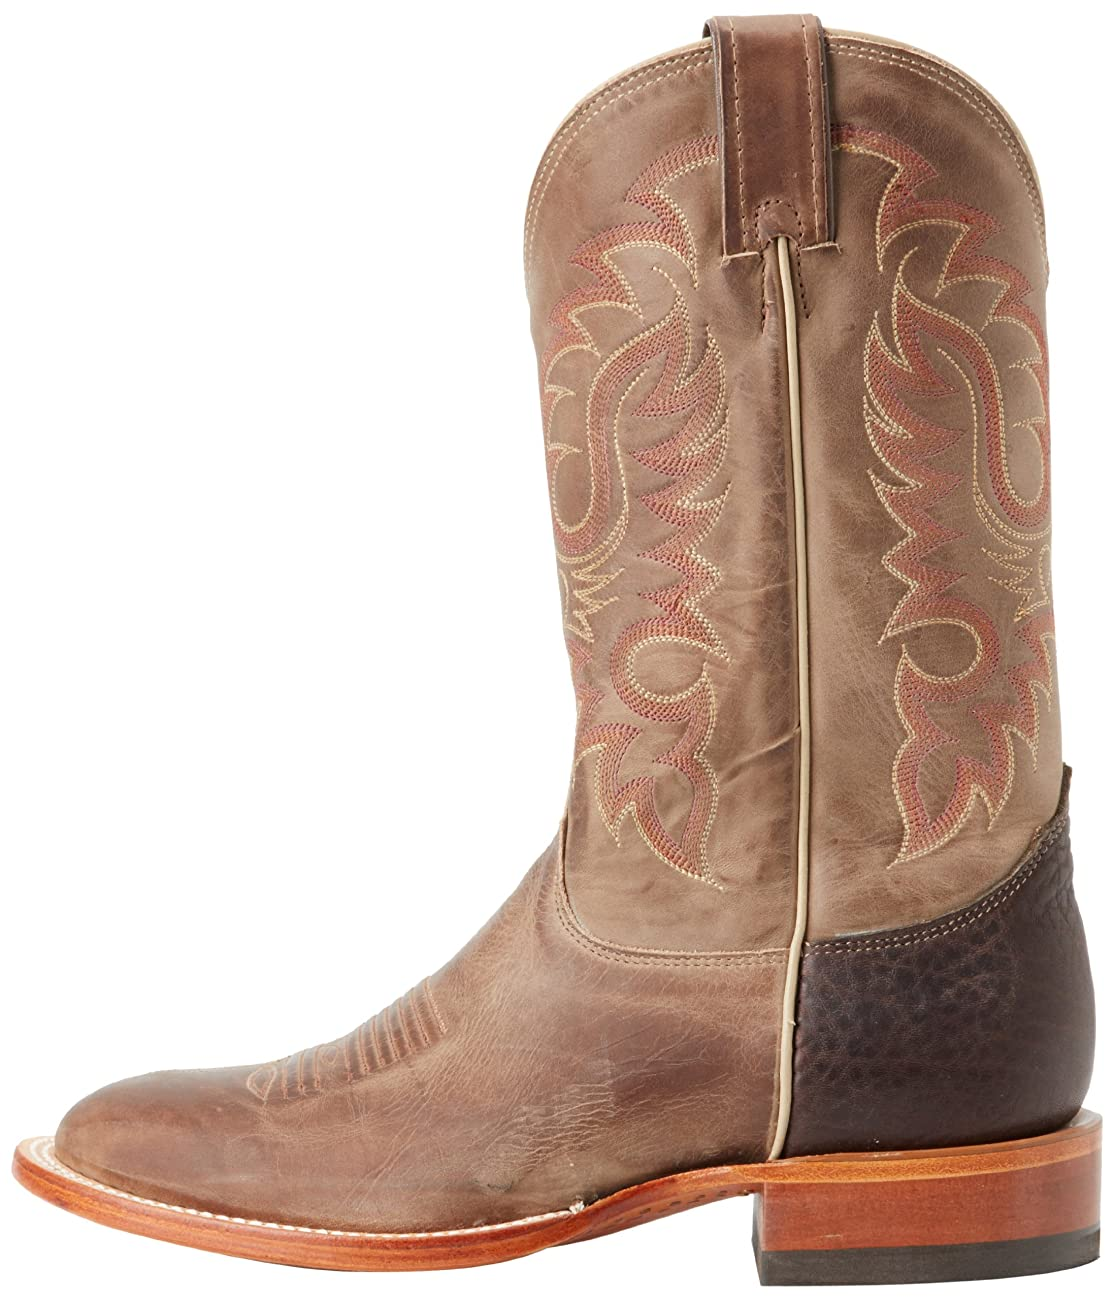 Nocona Boots Men's MD2732 11 Inch Boot 6